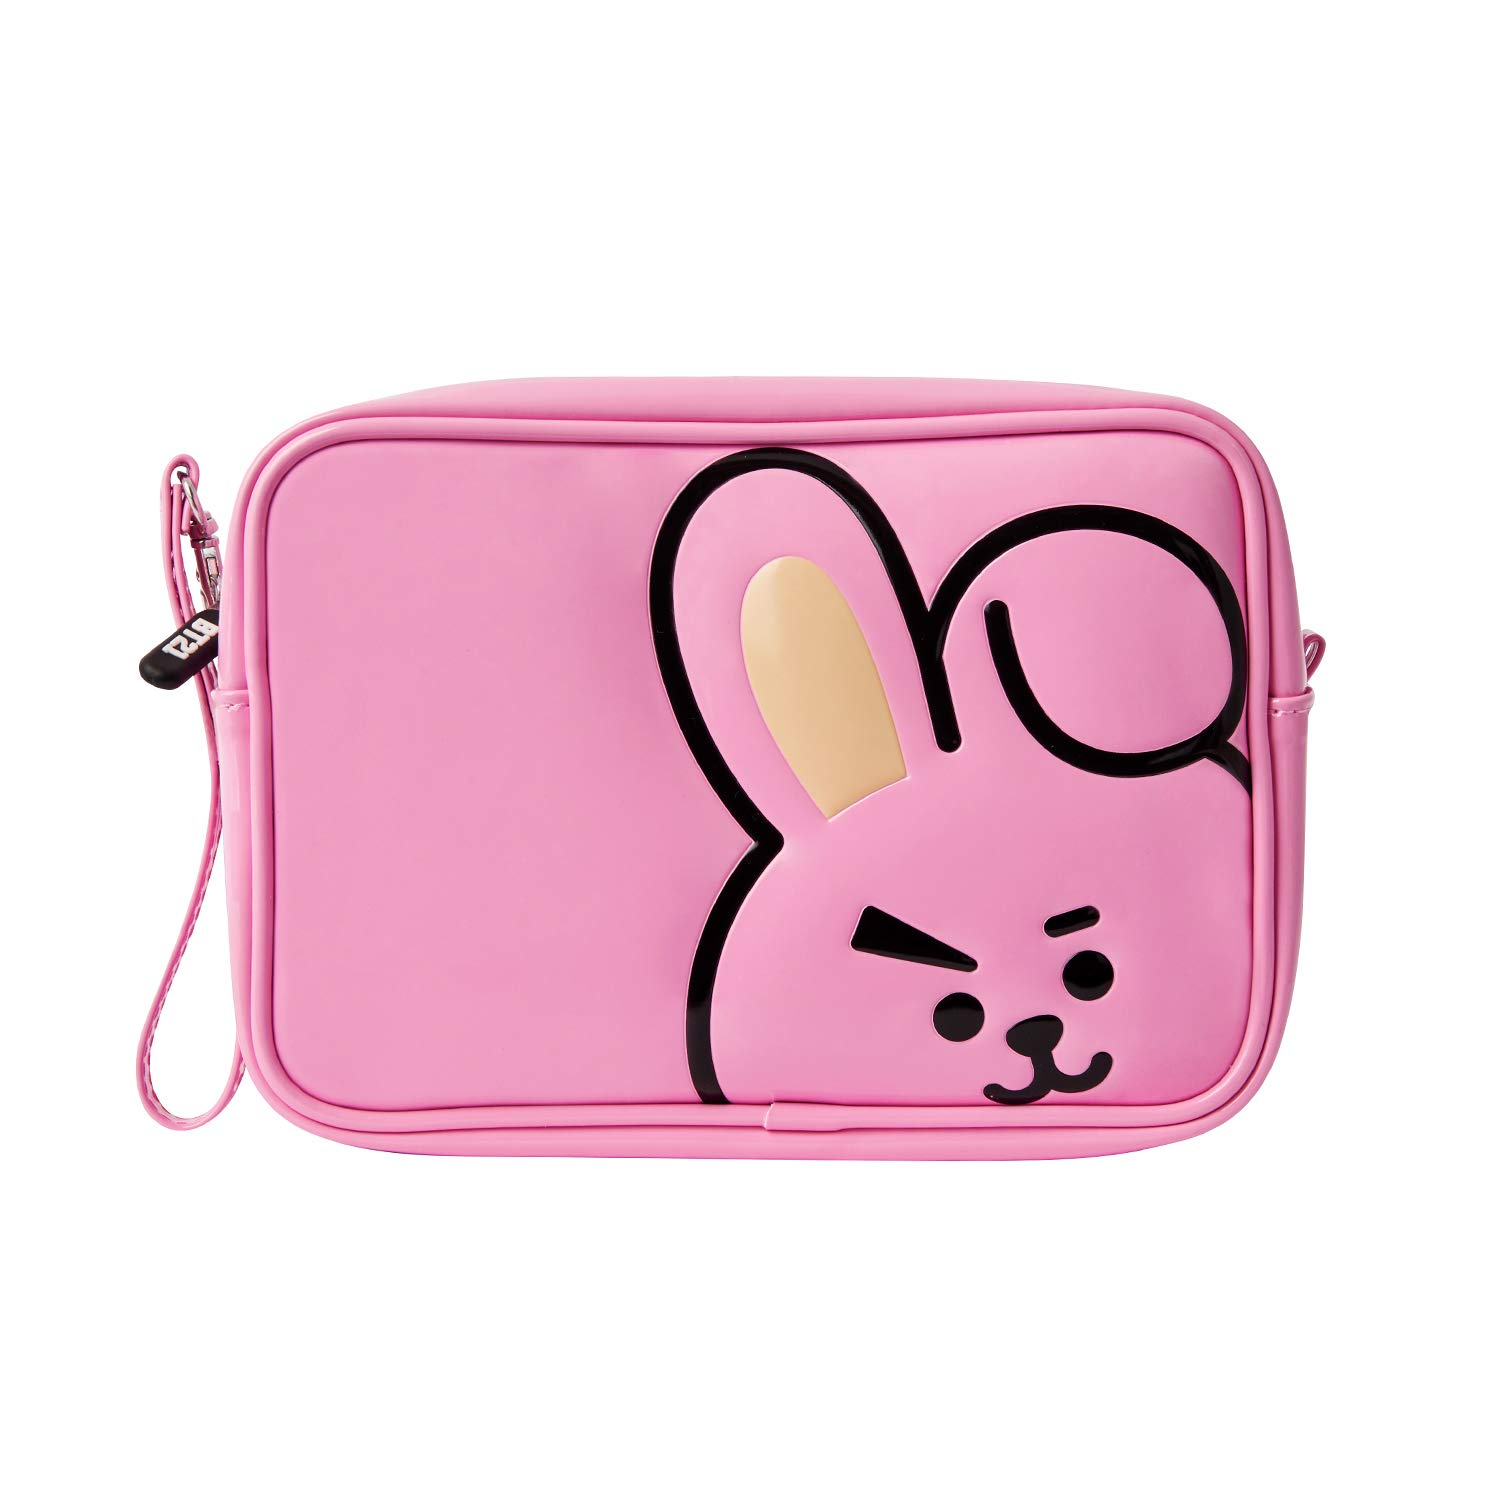 BT21 Official Merchandise by Line Friends - TATA Enamel Cosmetic Bag Travel Pouch for Toiletry and Makeup